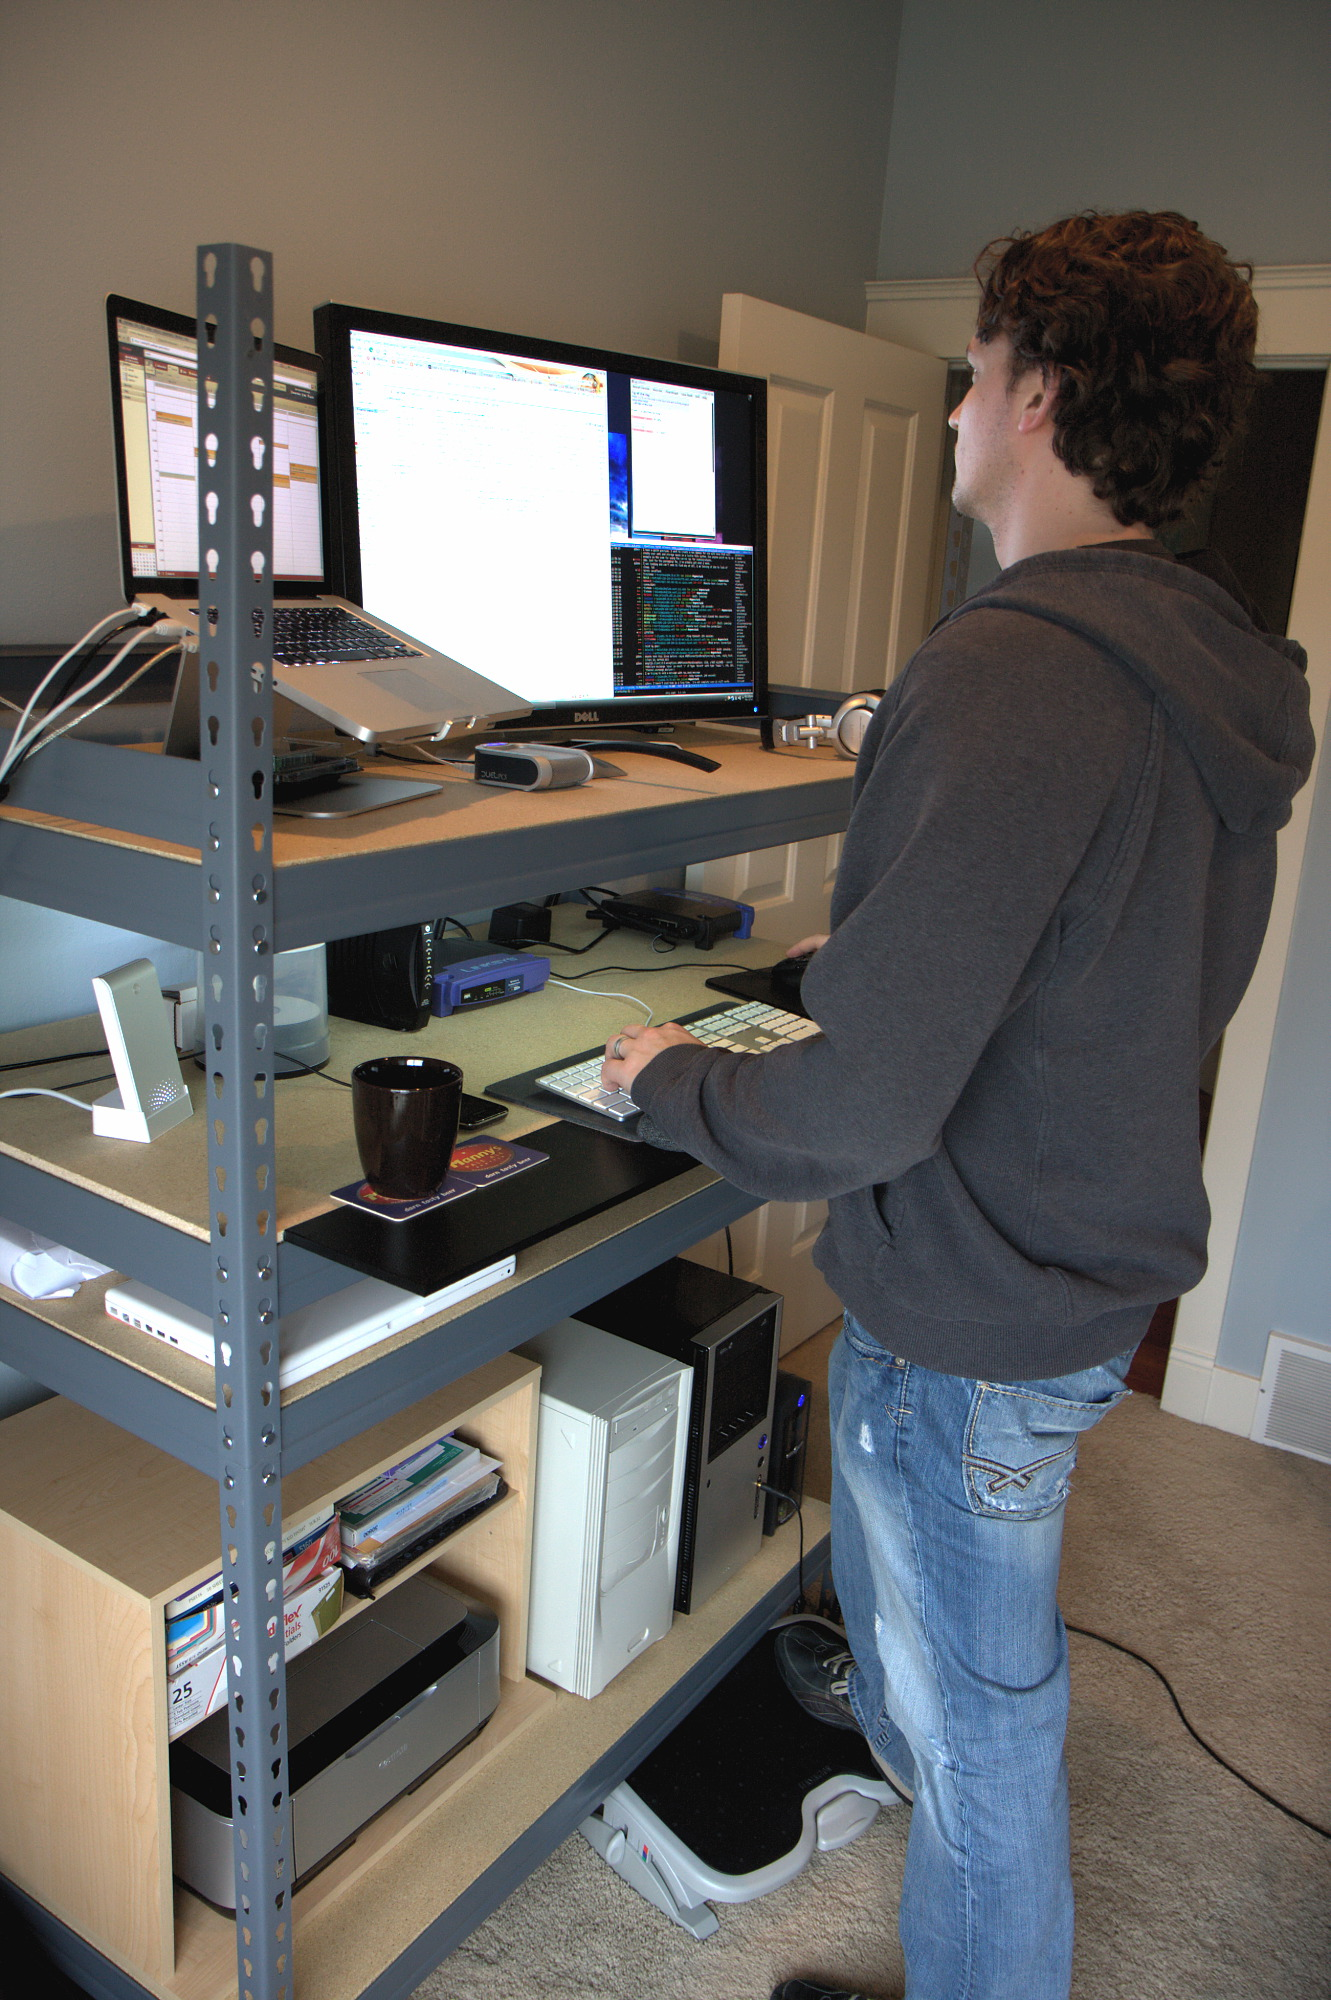 Complete Standing Desk Using Footrest